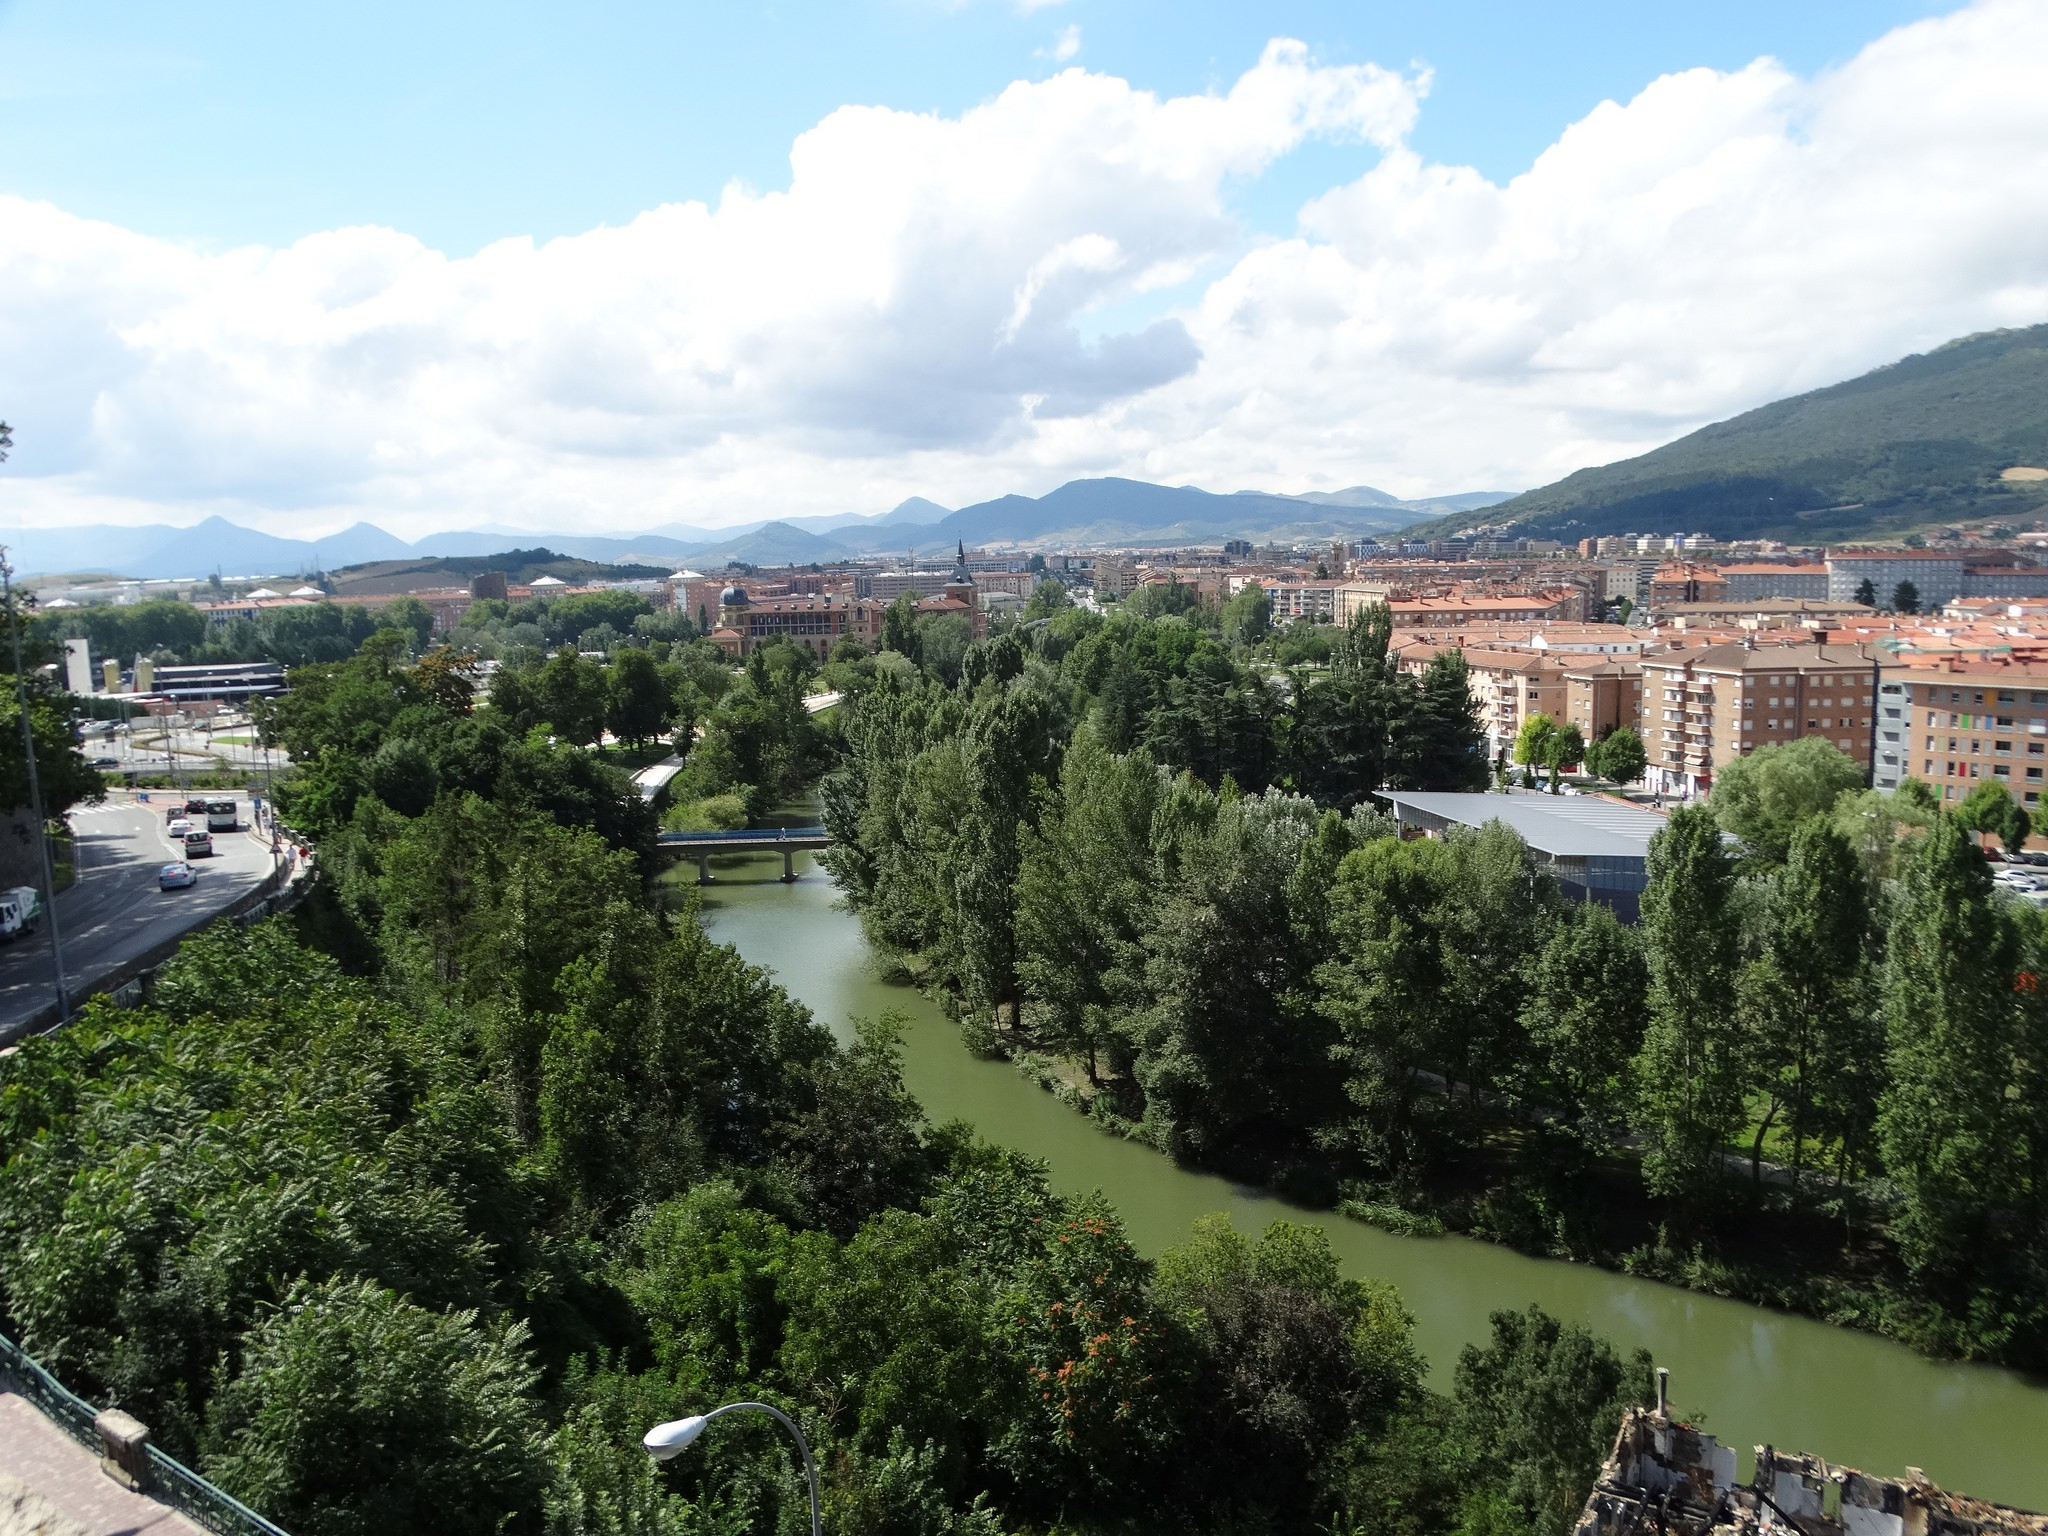 Agra River Pamplona © Adam Jones / Flickr